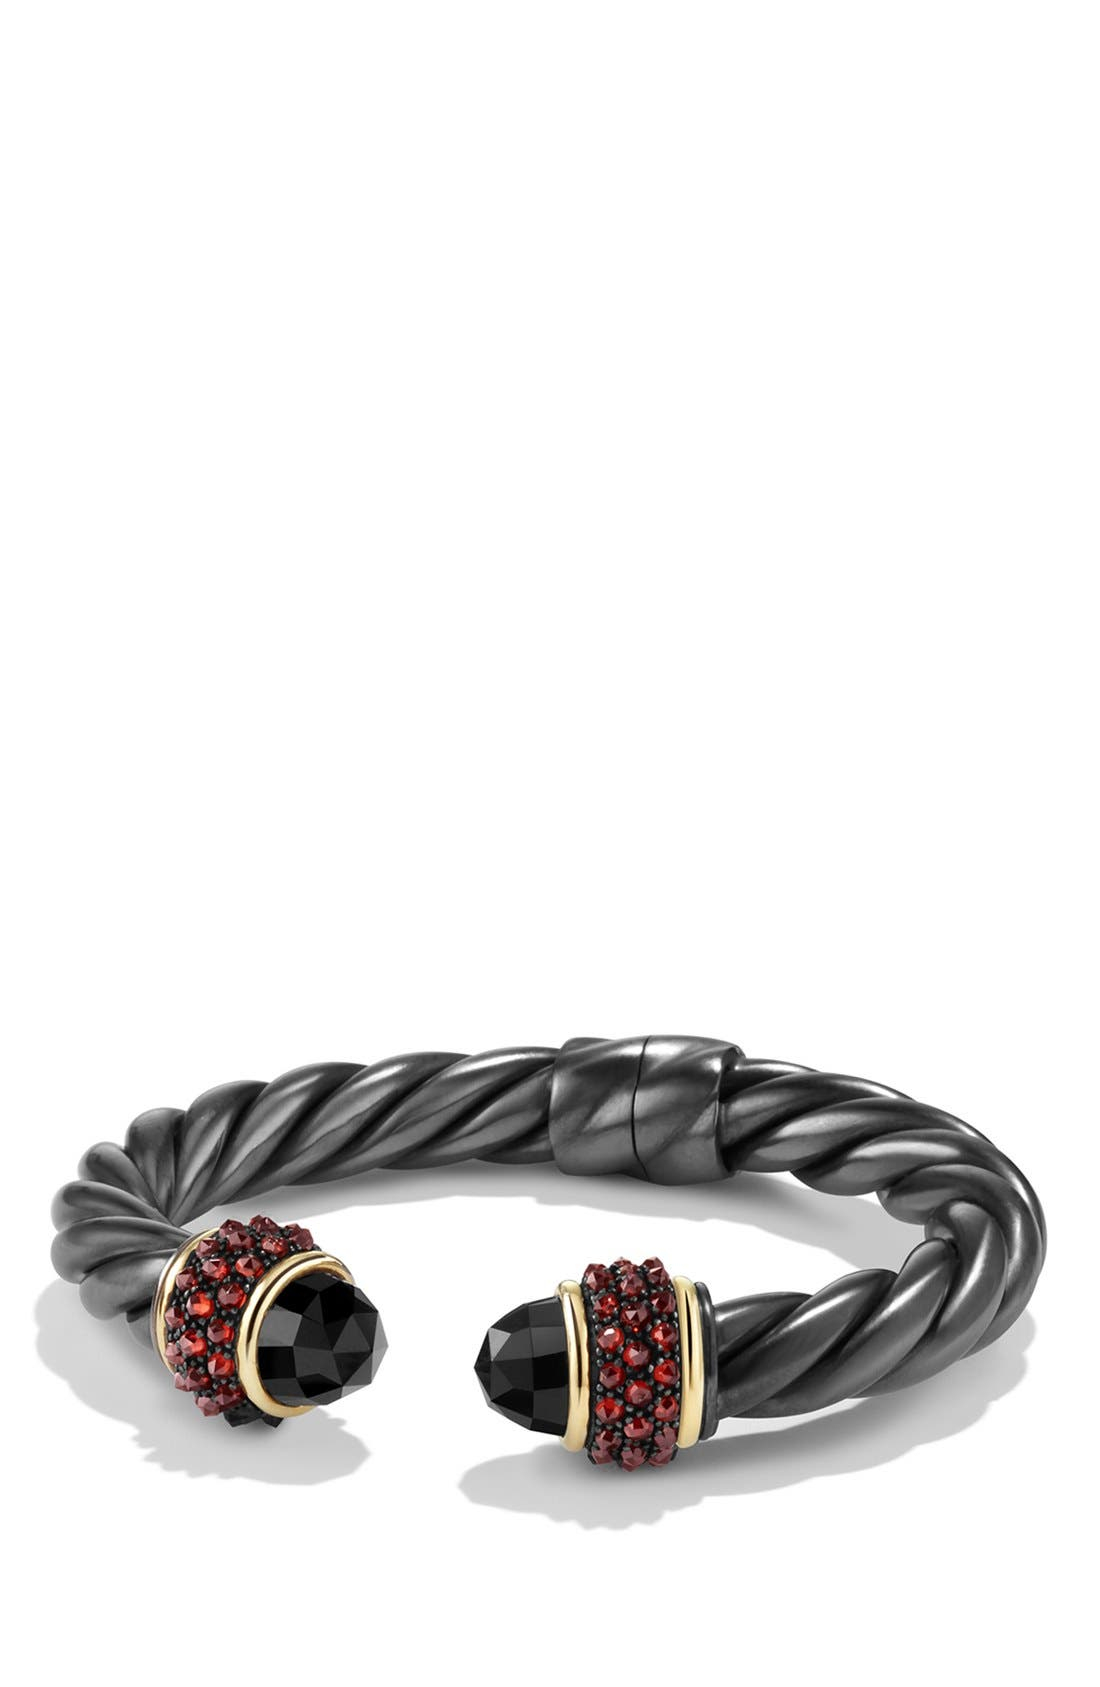 'Osetra' Bracelet with Black Onyx, Garnet and 18K Gold,                             Main thumbnail 1, color,                             001